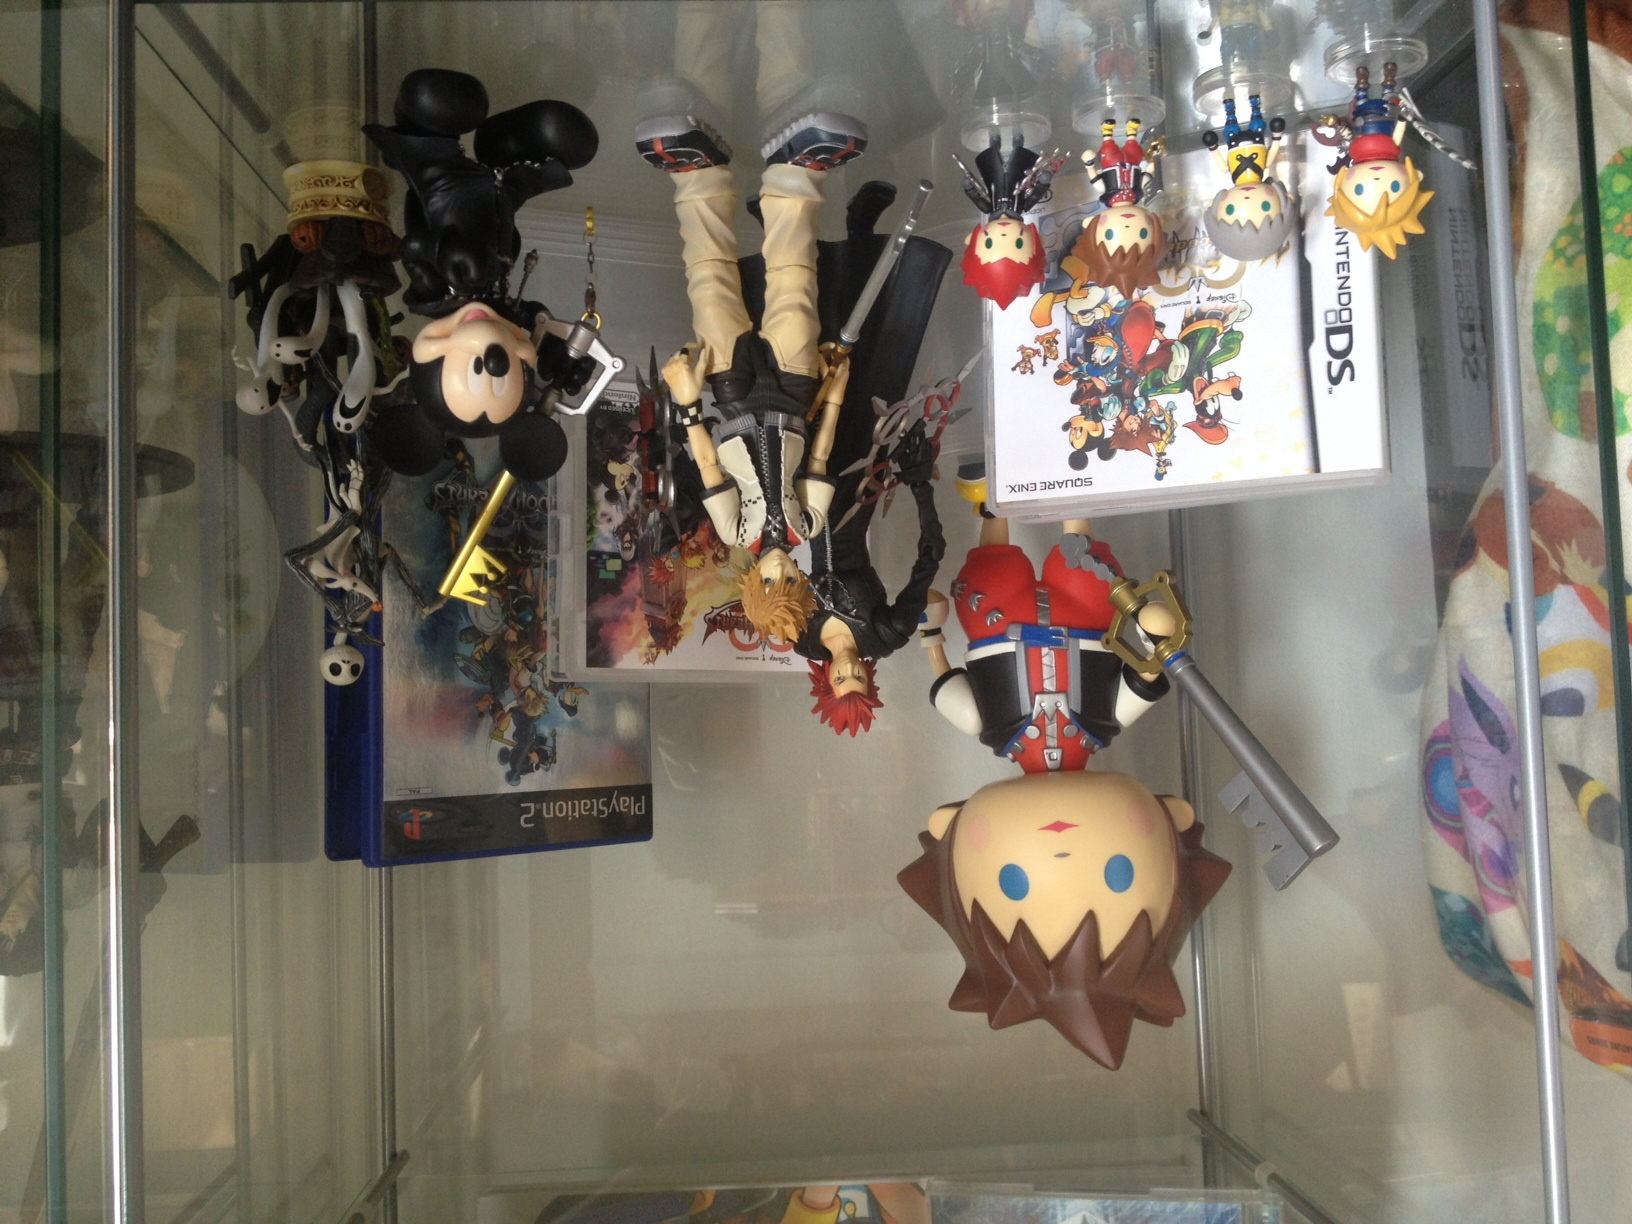 kotobukiya square_enix play_arts trading_arts riku kingdom_hearts formation_arts sora cloud_strife roxas jack_skellington kingdom_hearts_ii static_arts ooparts axel ds_game nomura_tetsuya king_mickey kingdom_hearts_coded the_walt_disney_company ps2_game kingdom_hearts_358/2_days disney_interactive_studios kingdom_hearts_formation_arts_vol._1 kingdom_hearts_play_arts kingdom_hearts_ii_play_arts buena_vista_games kingdom_hearts_re:_coded